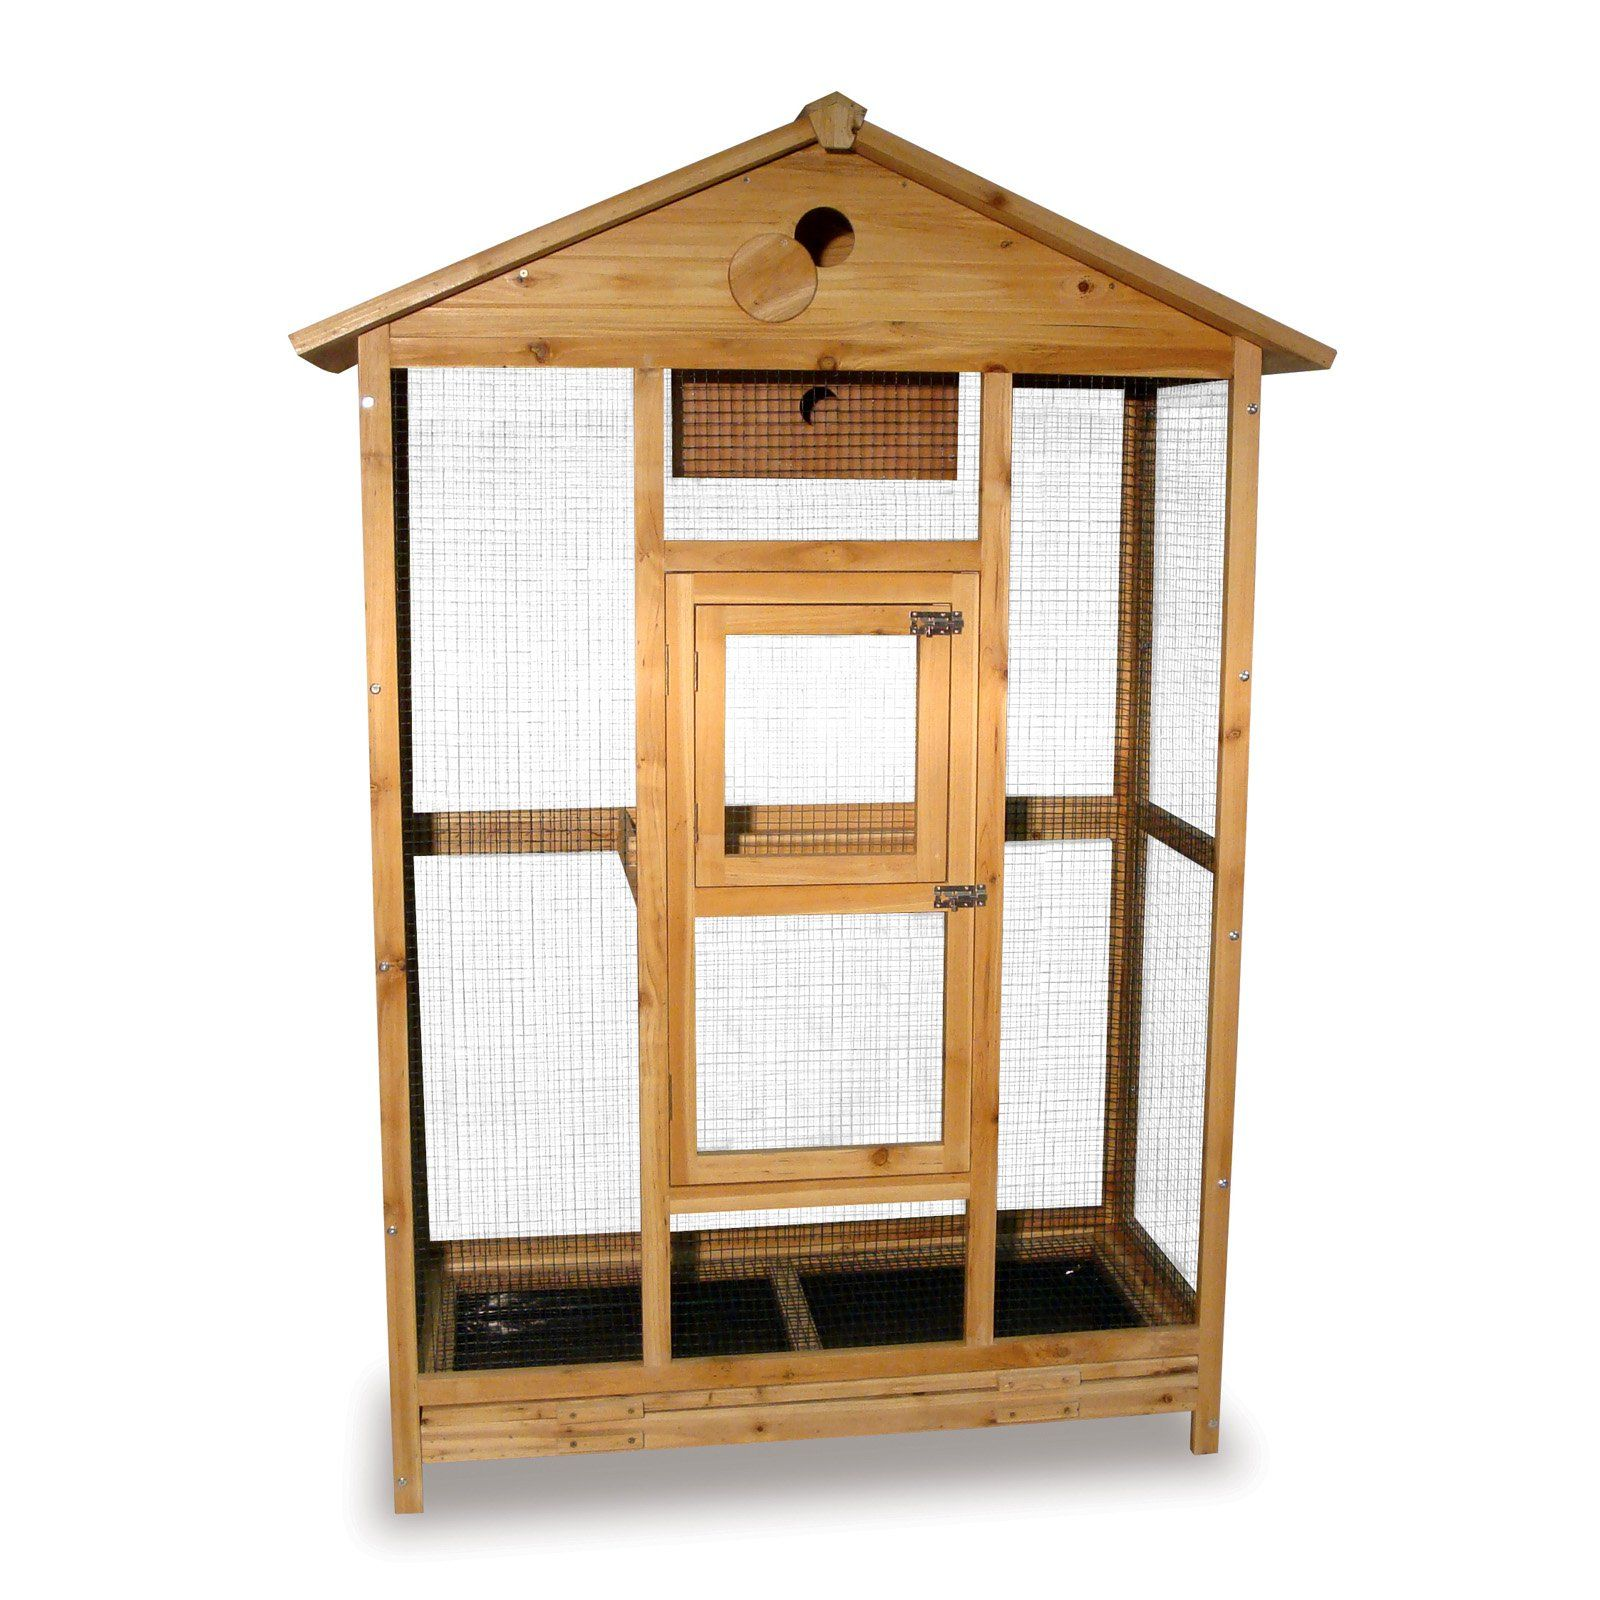 Doc Woody Bird Aviary - The Doc Woody Bird Aviary makes a great home ...